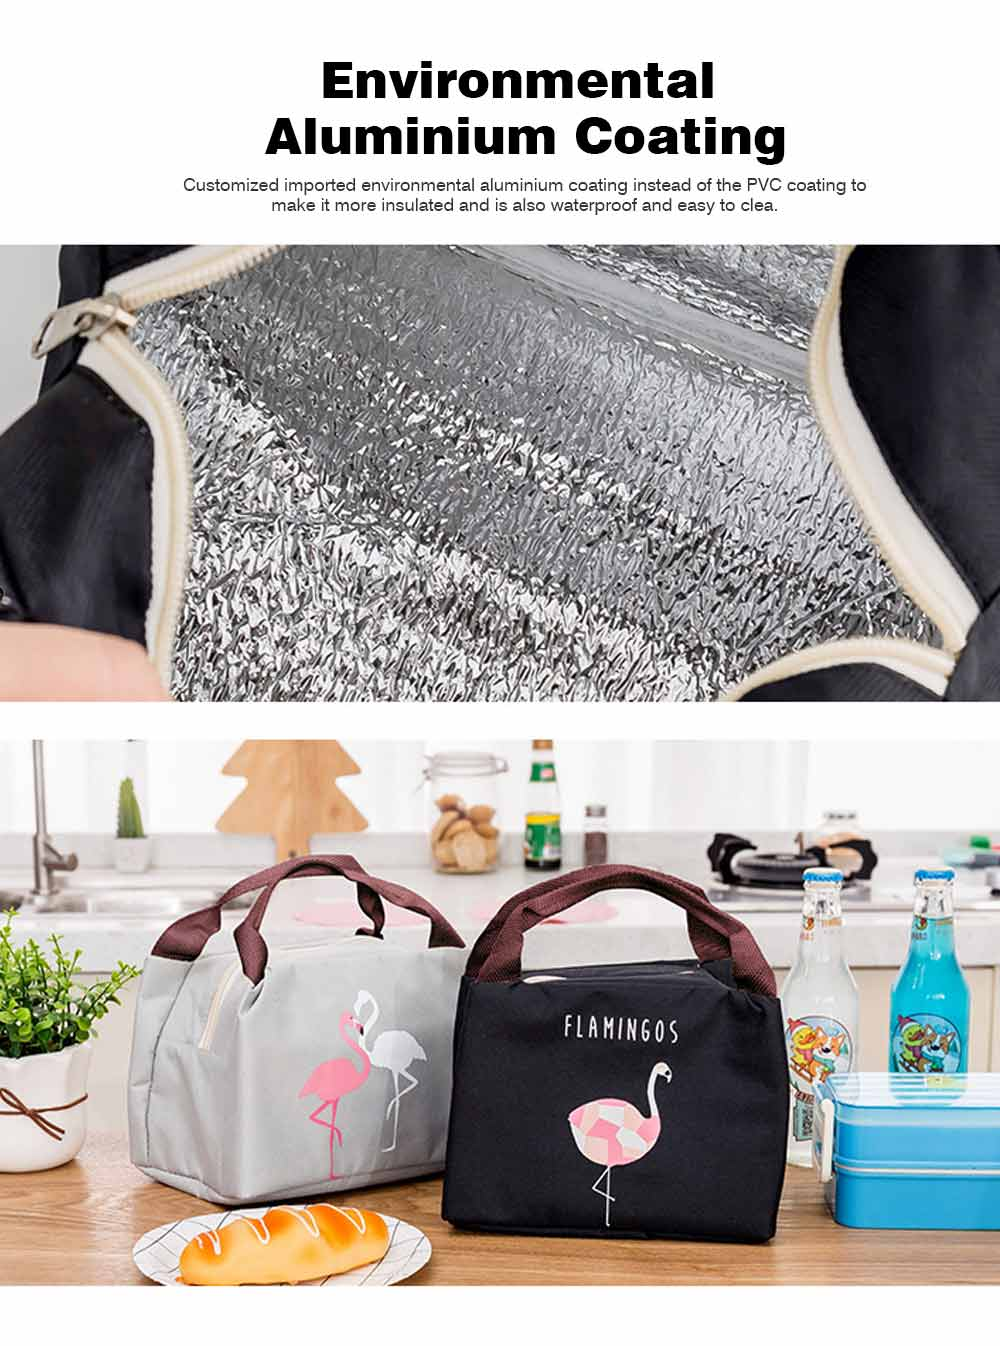 Cartoon Insulated Lunch Bag with Zipper, Cooler Bag Lunch Container for Outdoor Activities, School, Adults, Children, Waterproof Lunch Tote 4